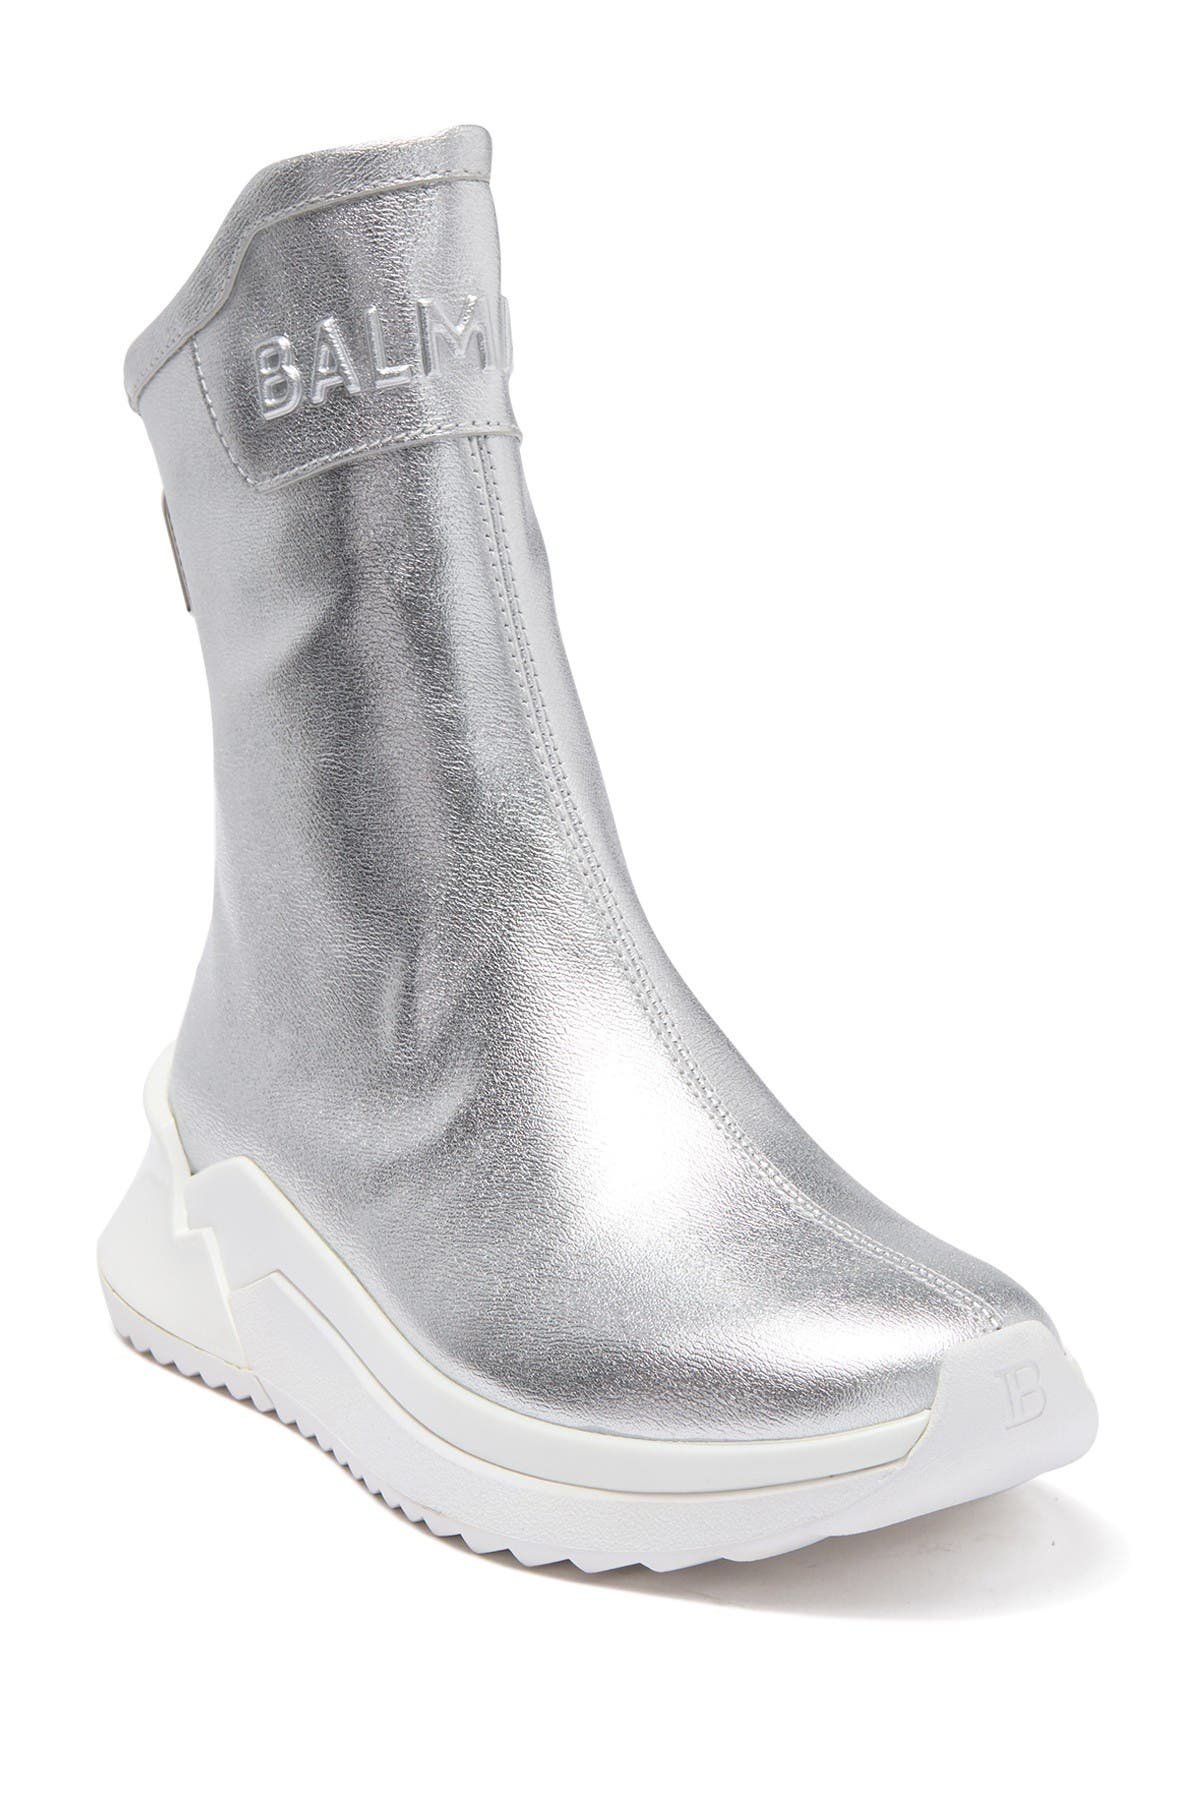 Image of Balmain B-Glove Metallic Sneaker Boot